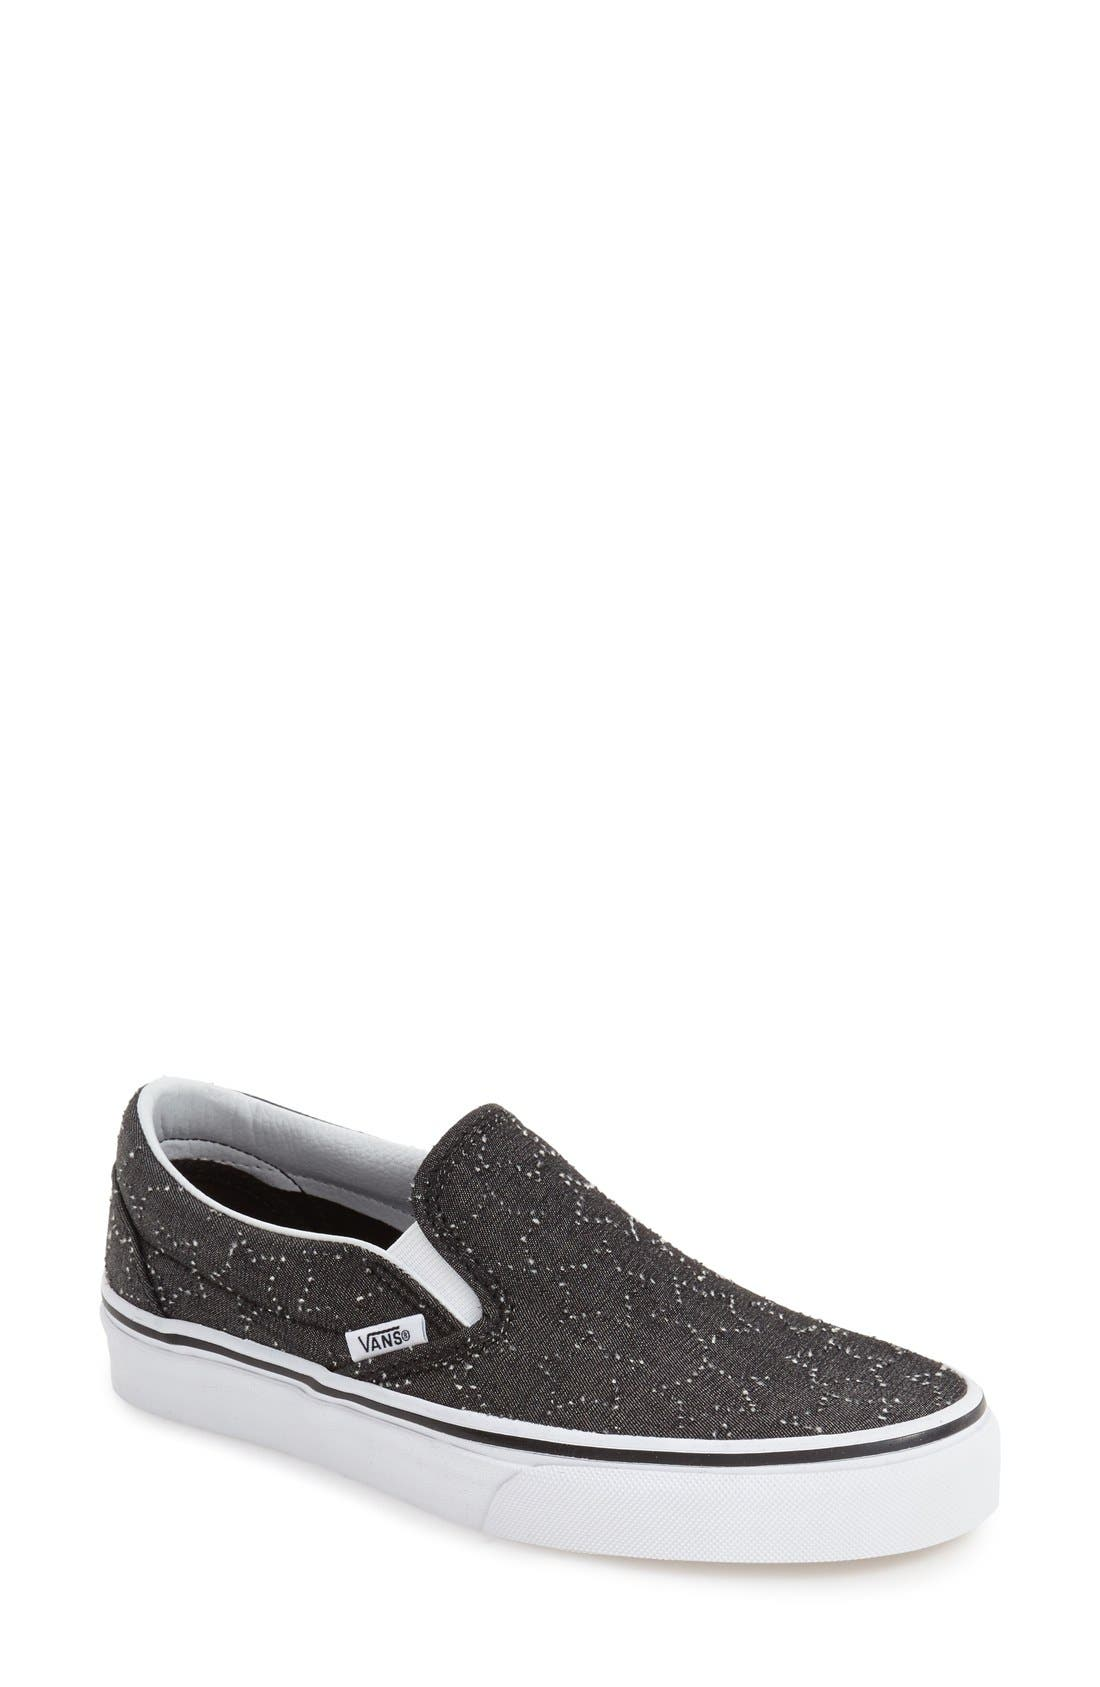 Classic Slip-On Sneaker,                         Main,                         color, CHECKER FLORAL BLACK